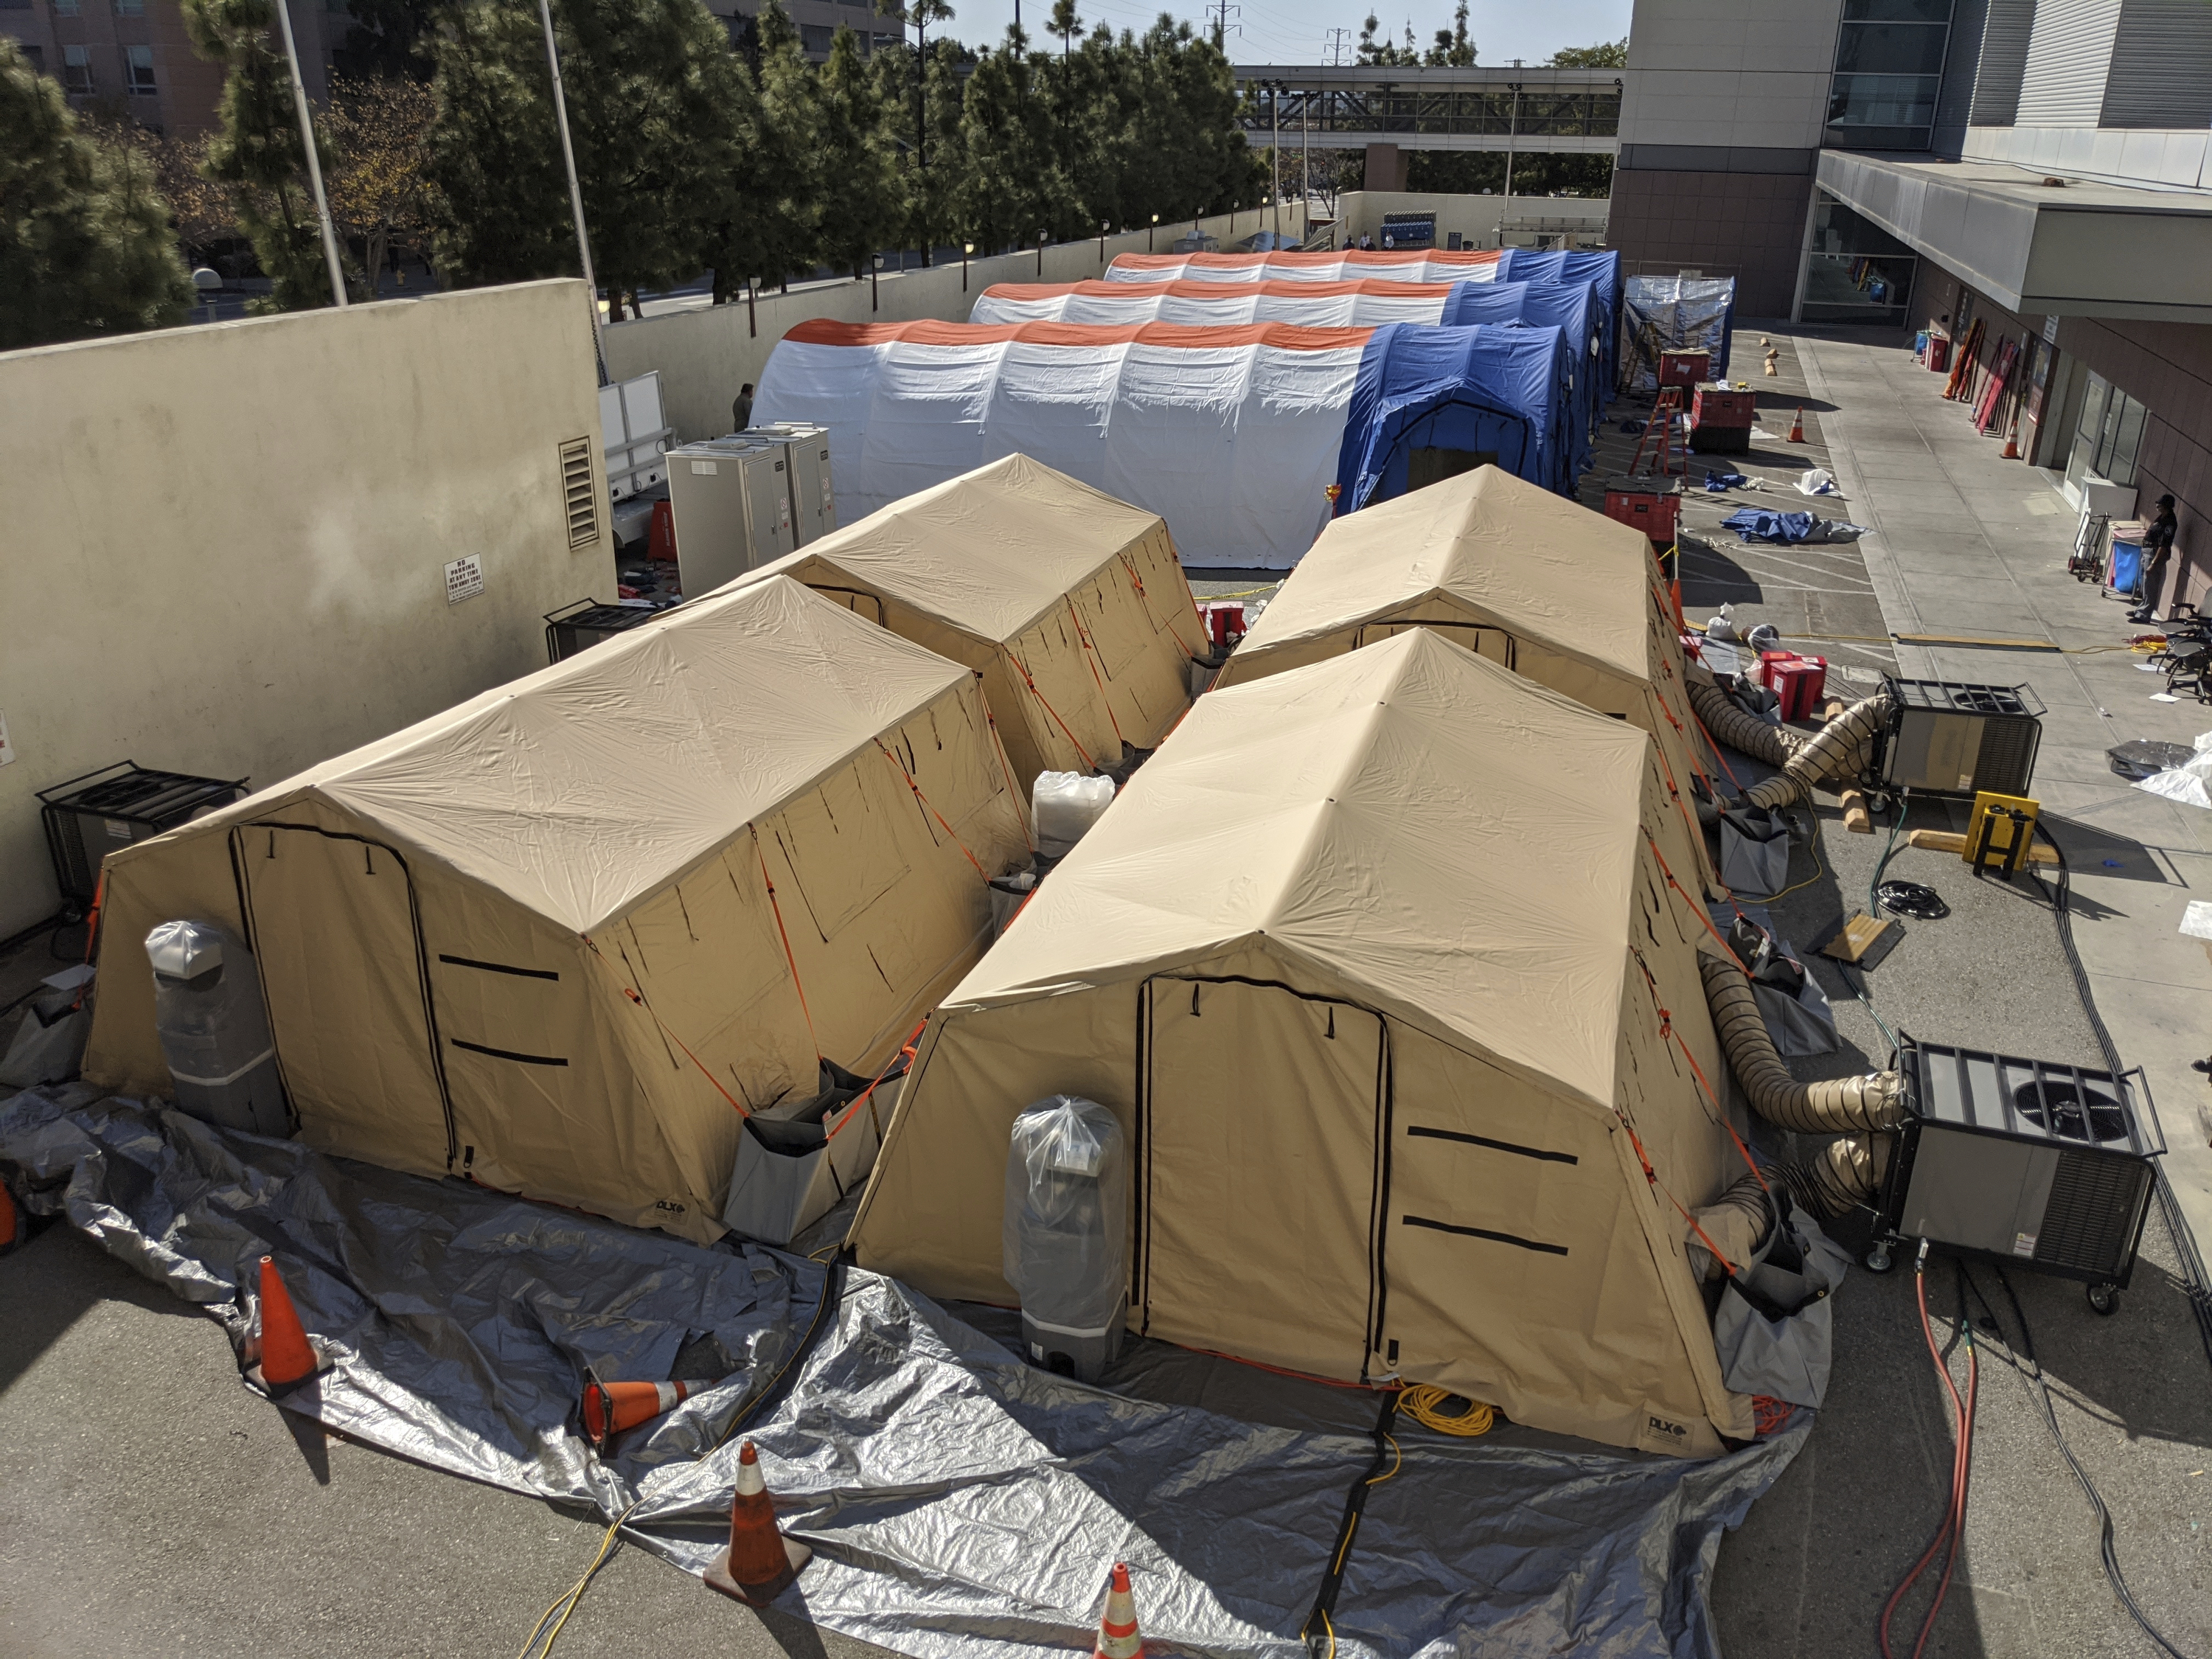 Triage tents for coronavirus patients